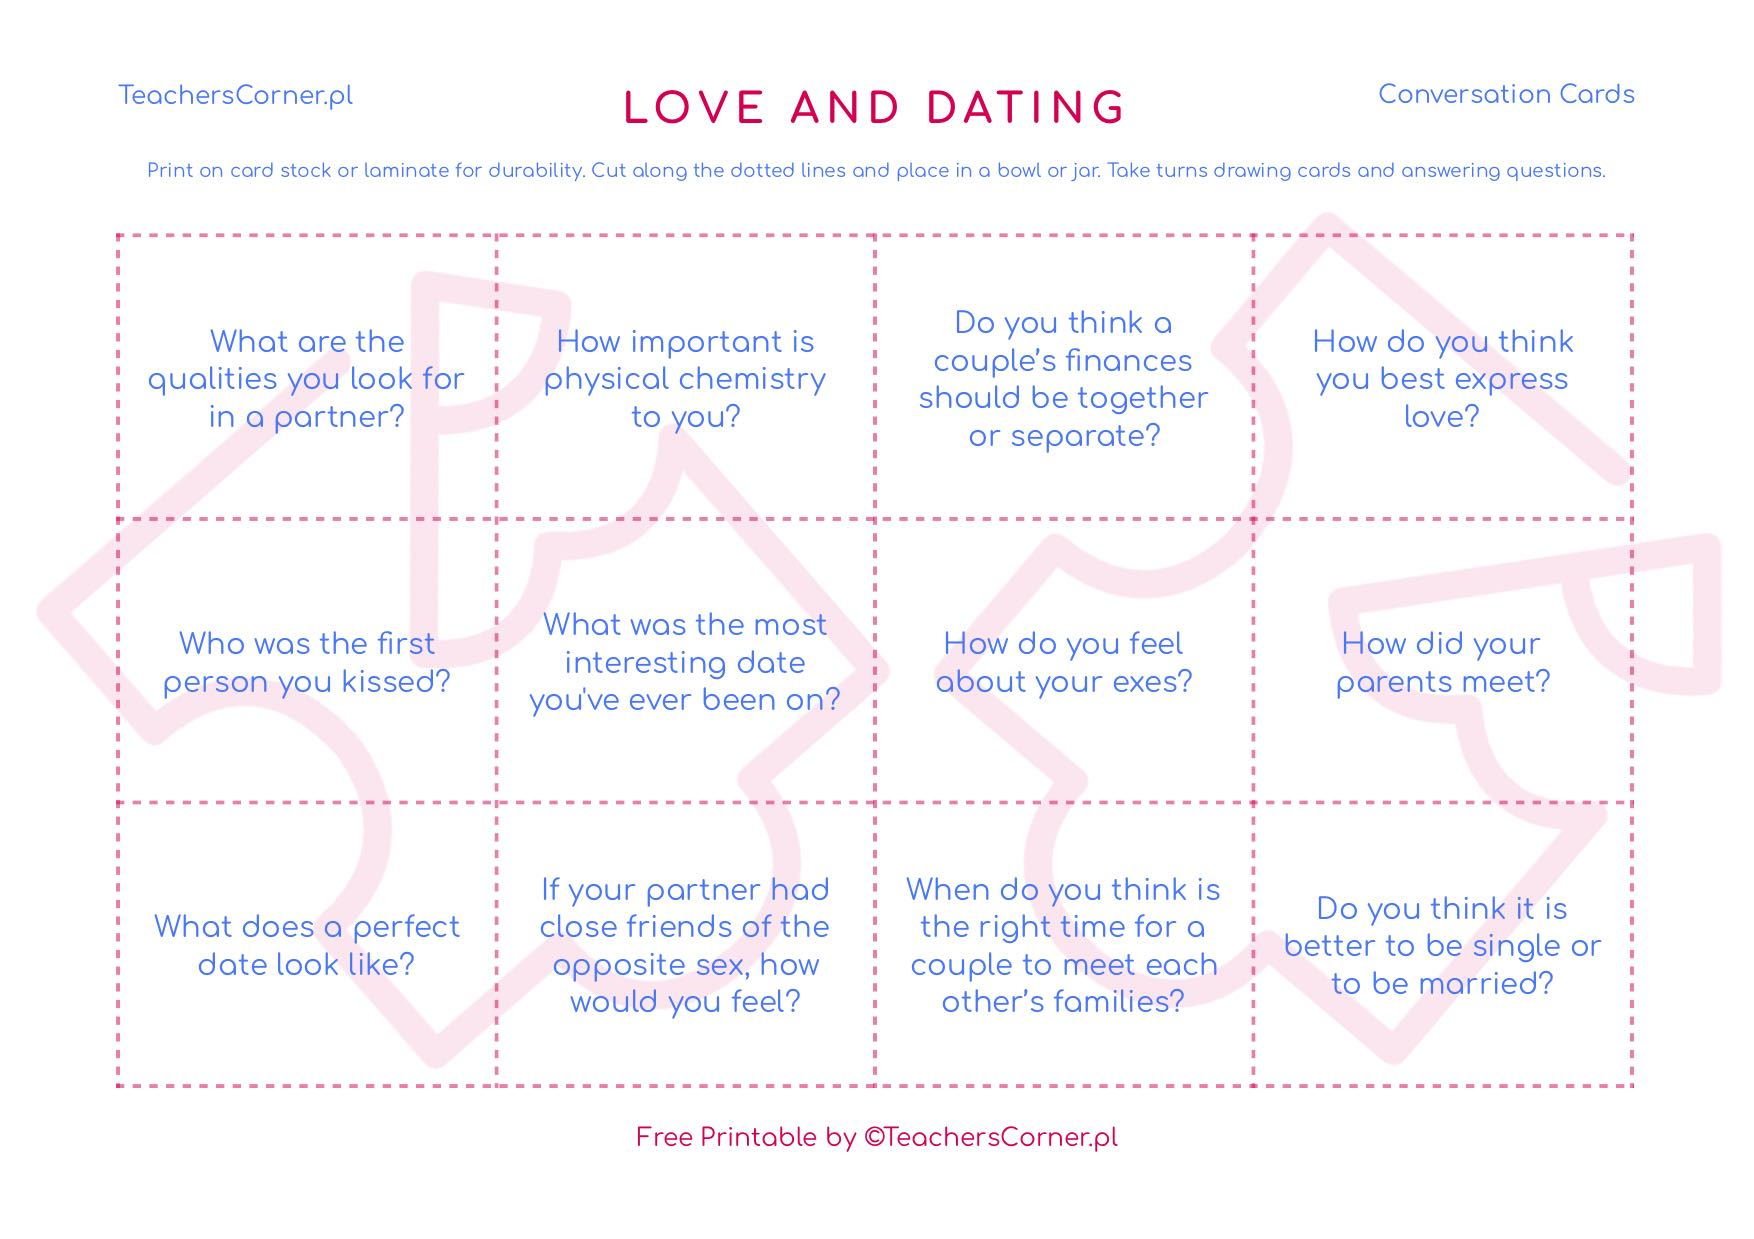 Love and Dating Conversation Cards